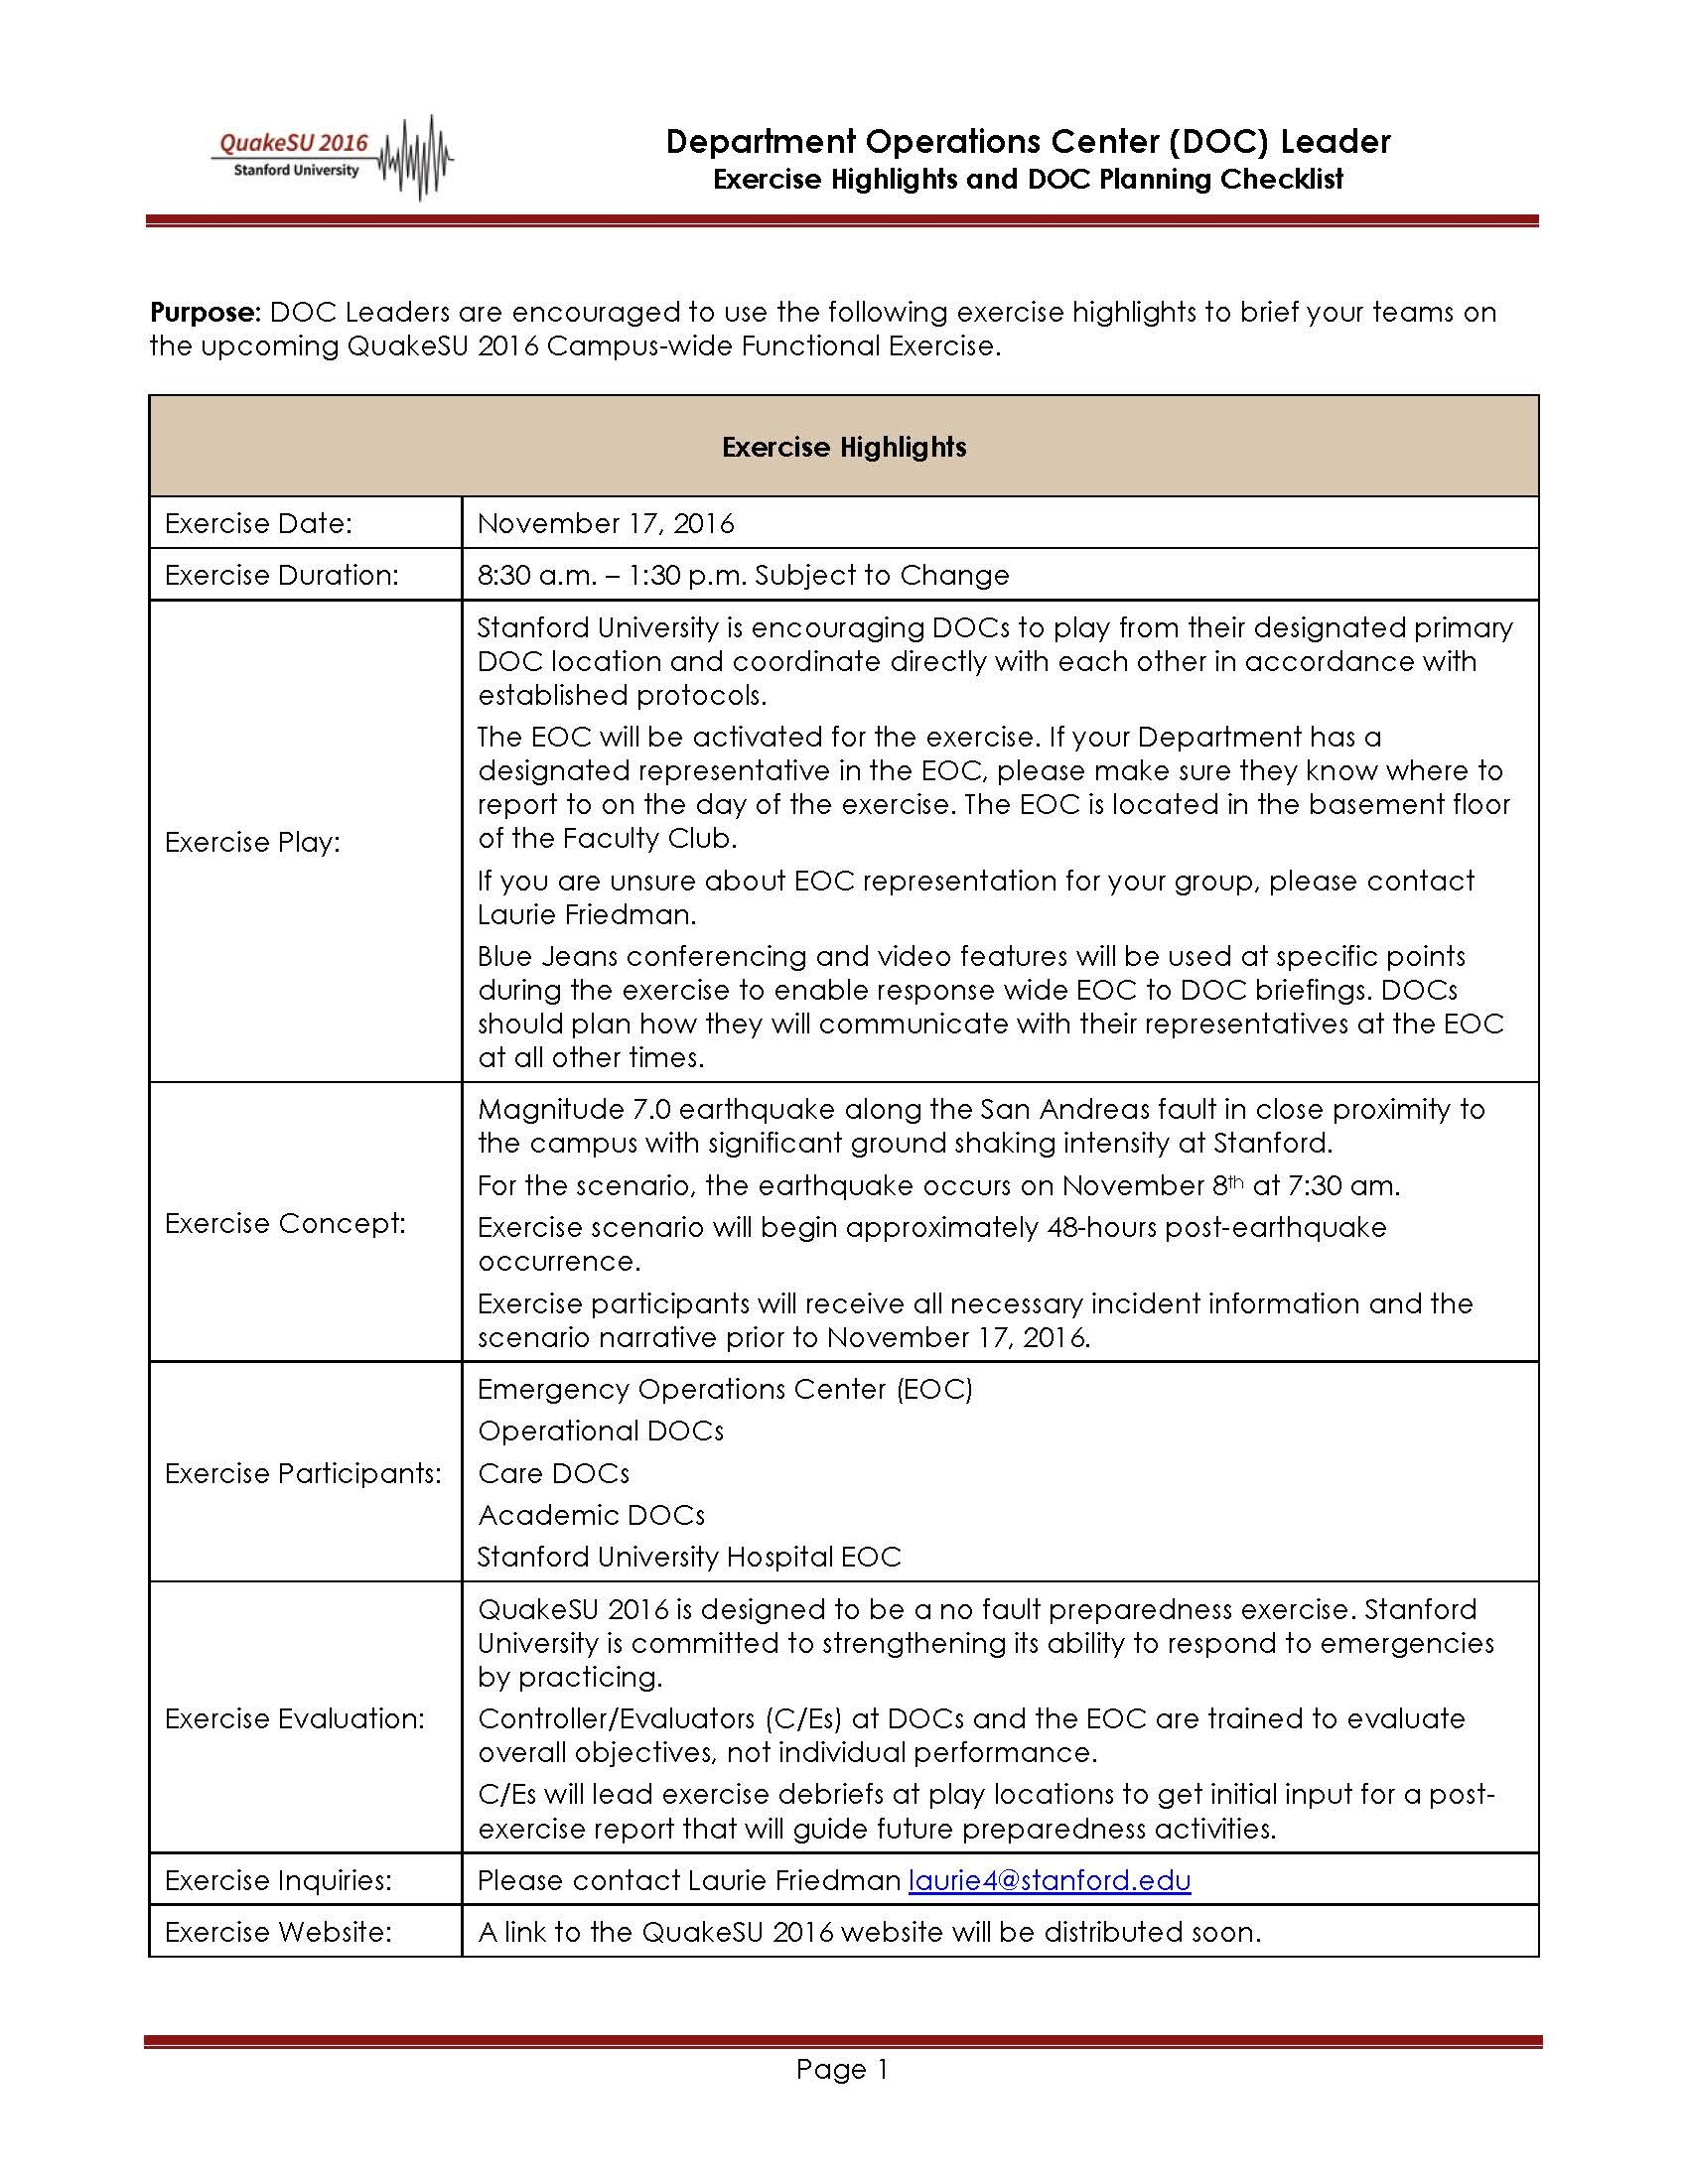 Tabletop Exercise Template Designer Tables Reference